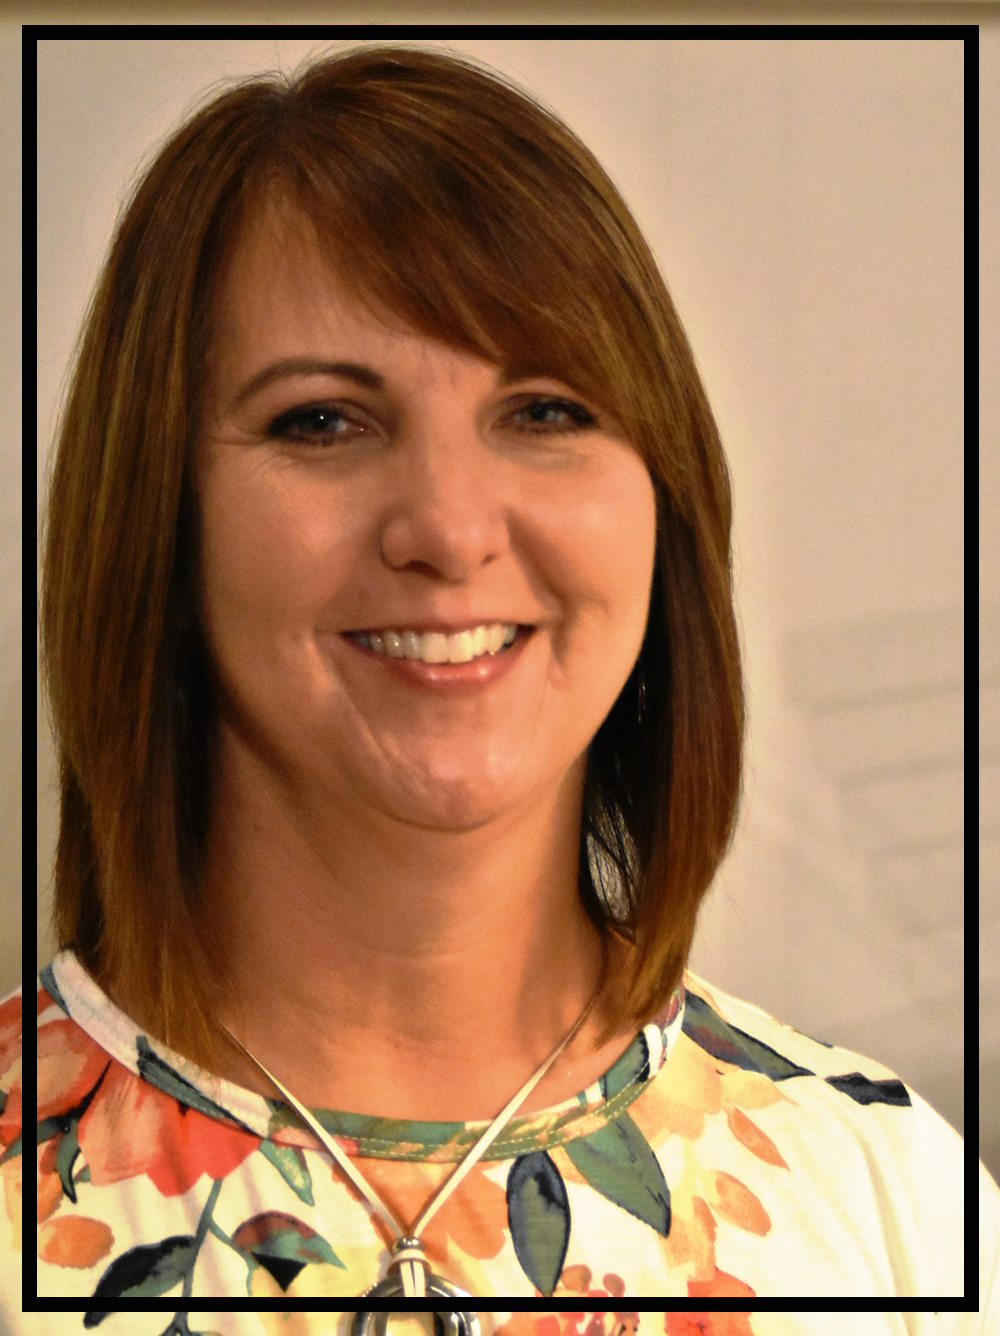 Music Director: Christy Henson - How long have you been on staff at FUMC? I joined the staff of FUMC in August of 2008.What do you love about FUMC? I love the people of FUMC and the way they love and serve those around them.What is your favorite Bible Verse?Isaiah 40:31